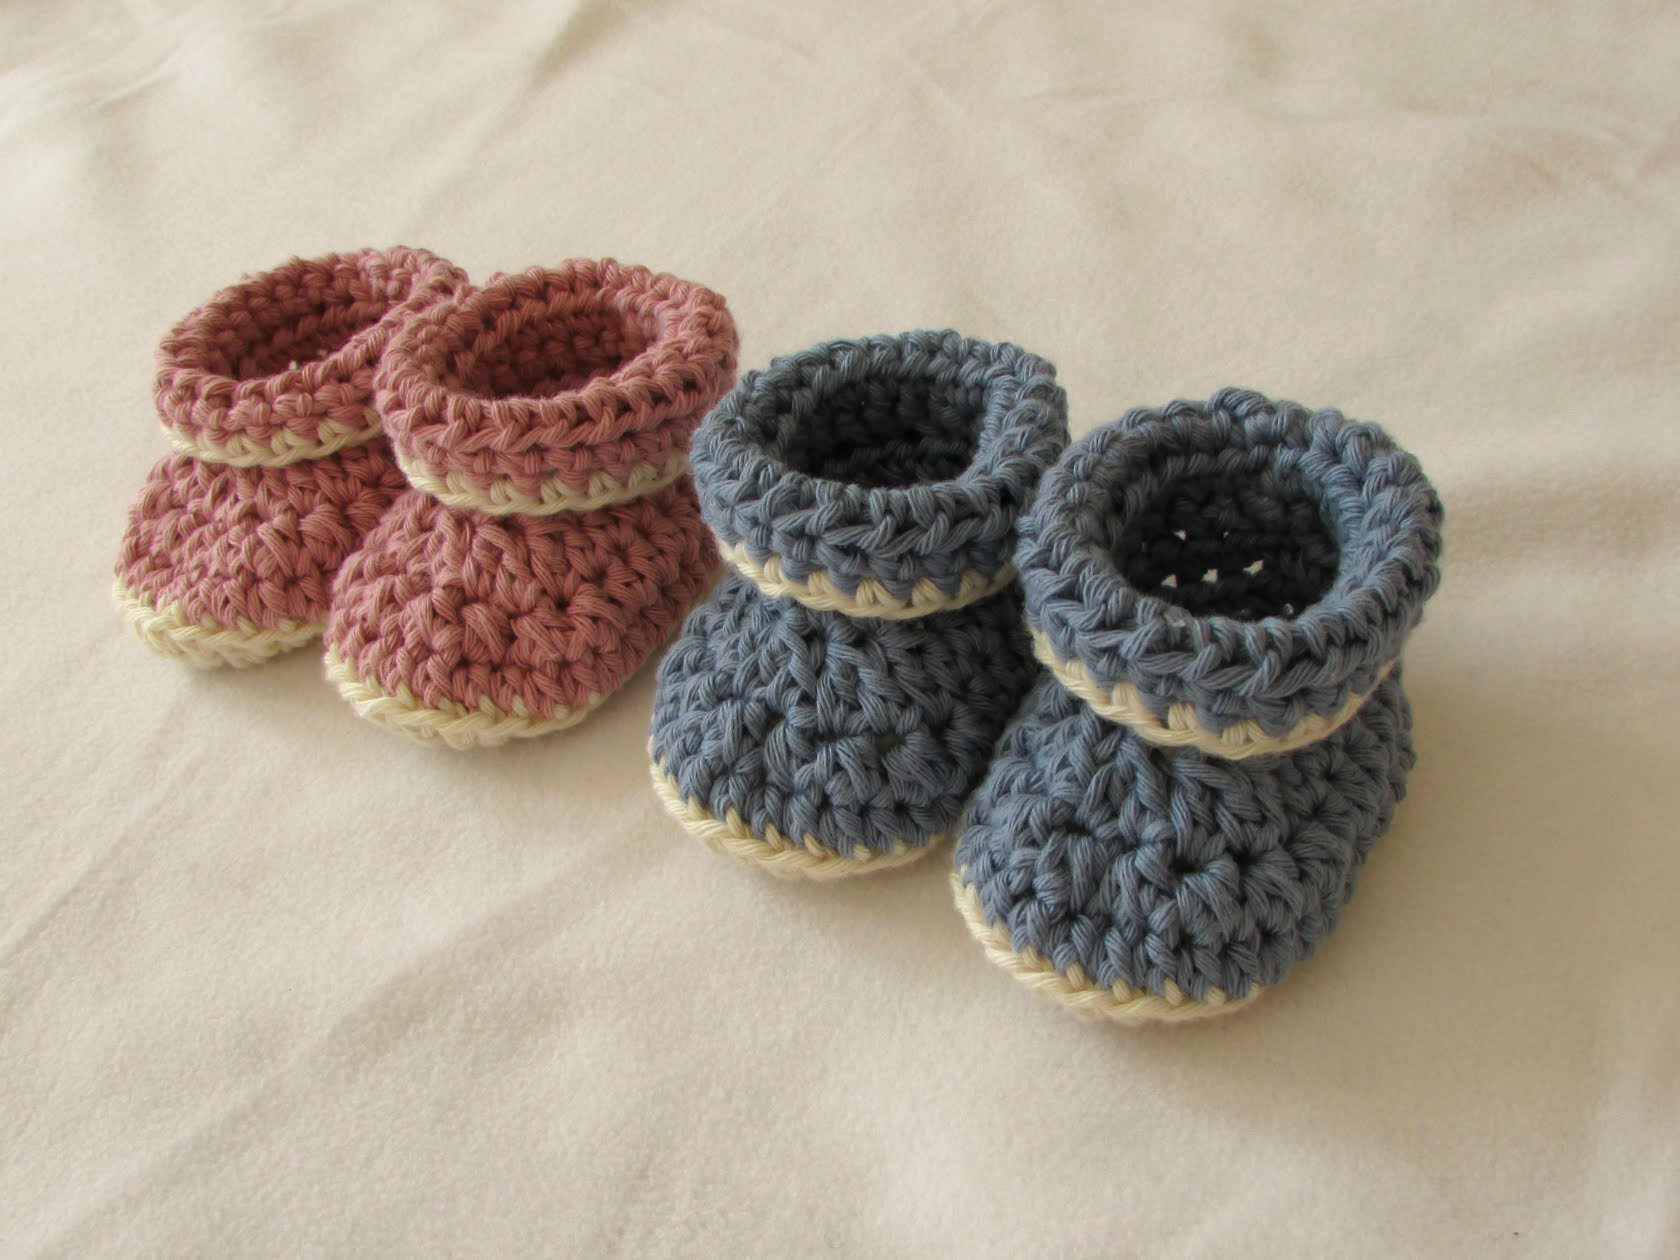 Free Crochet Baby Patterns Beautiful 36 Easy & Free Crochet Baby Booties Patterns for Your Angel Of Delightful 49 Ideas Free Crochet Baby Patterns